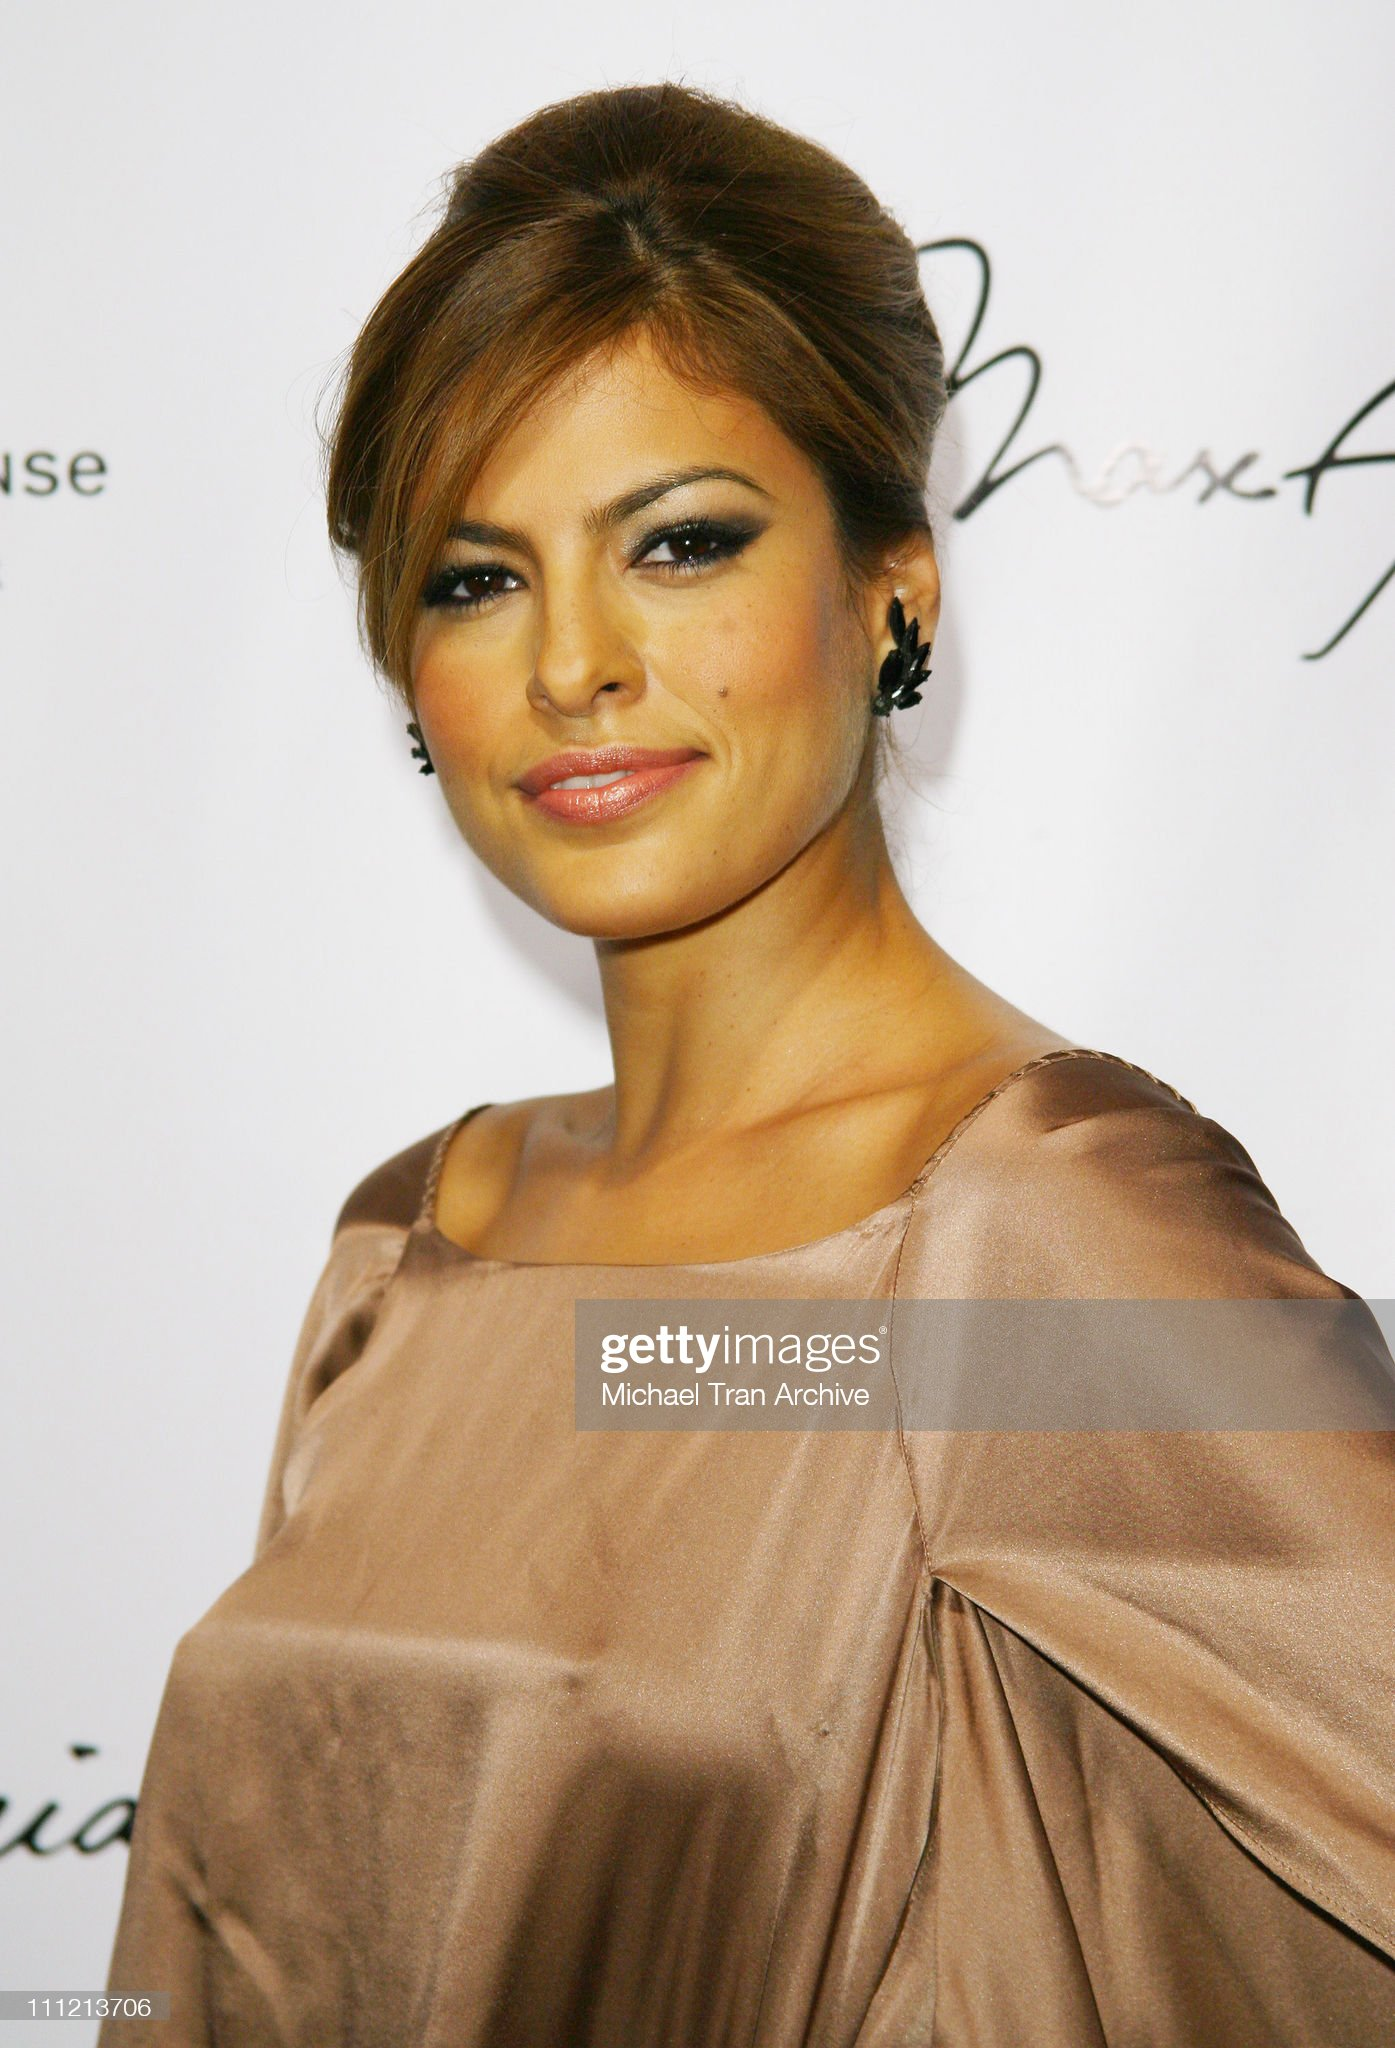 ¿Cuánto mide Eva Mendes? - Altura - Real height Eva-mendes-during-max-lubov-azria-eva-mendes-and-w-host-unveiling-of-picture-id111213706?s=2048x2048